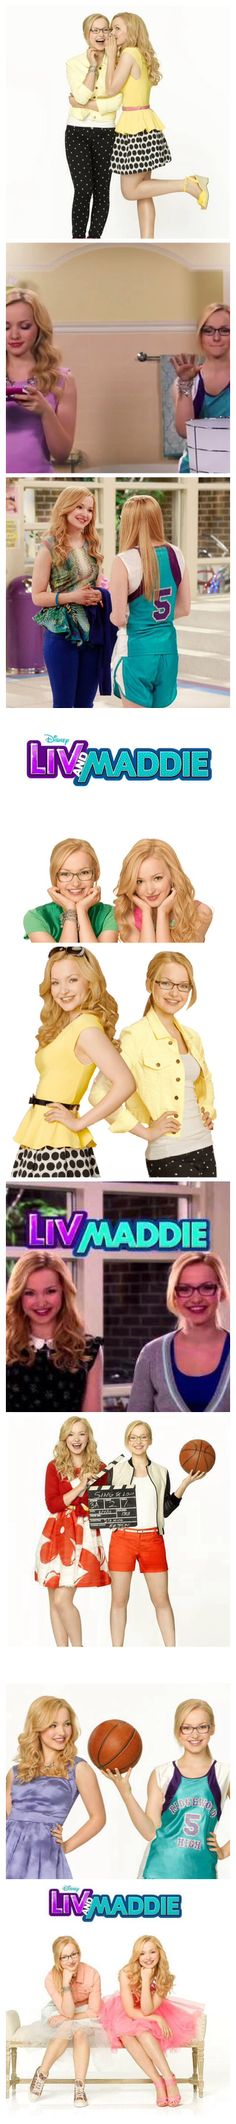 Liv and Maddie photo strip